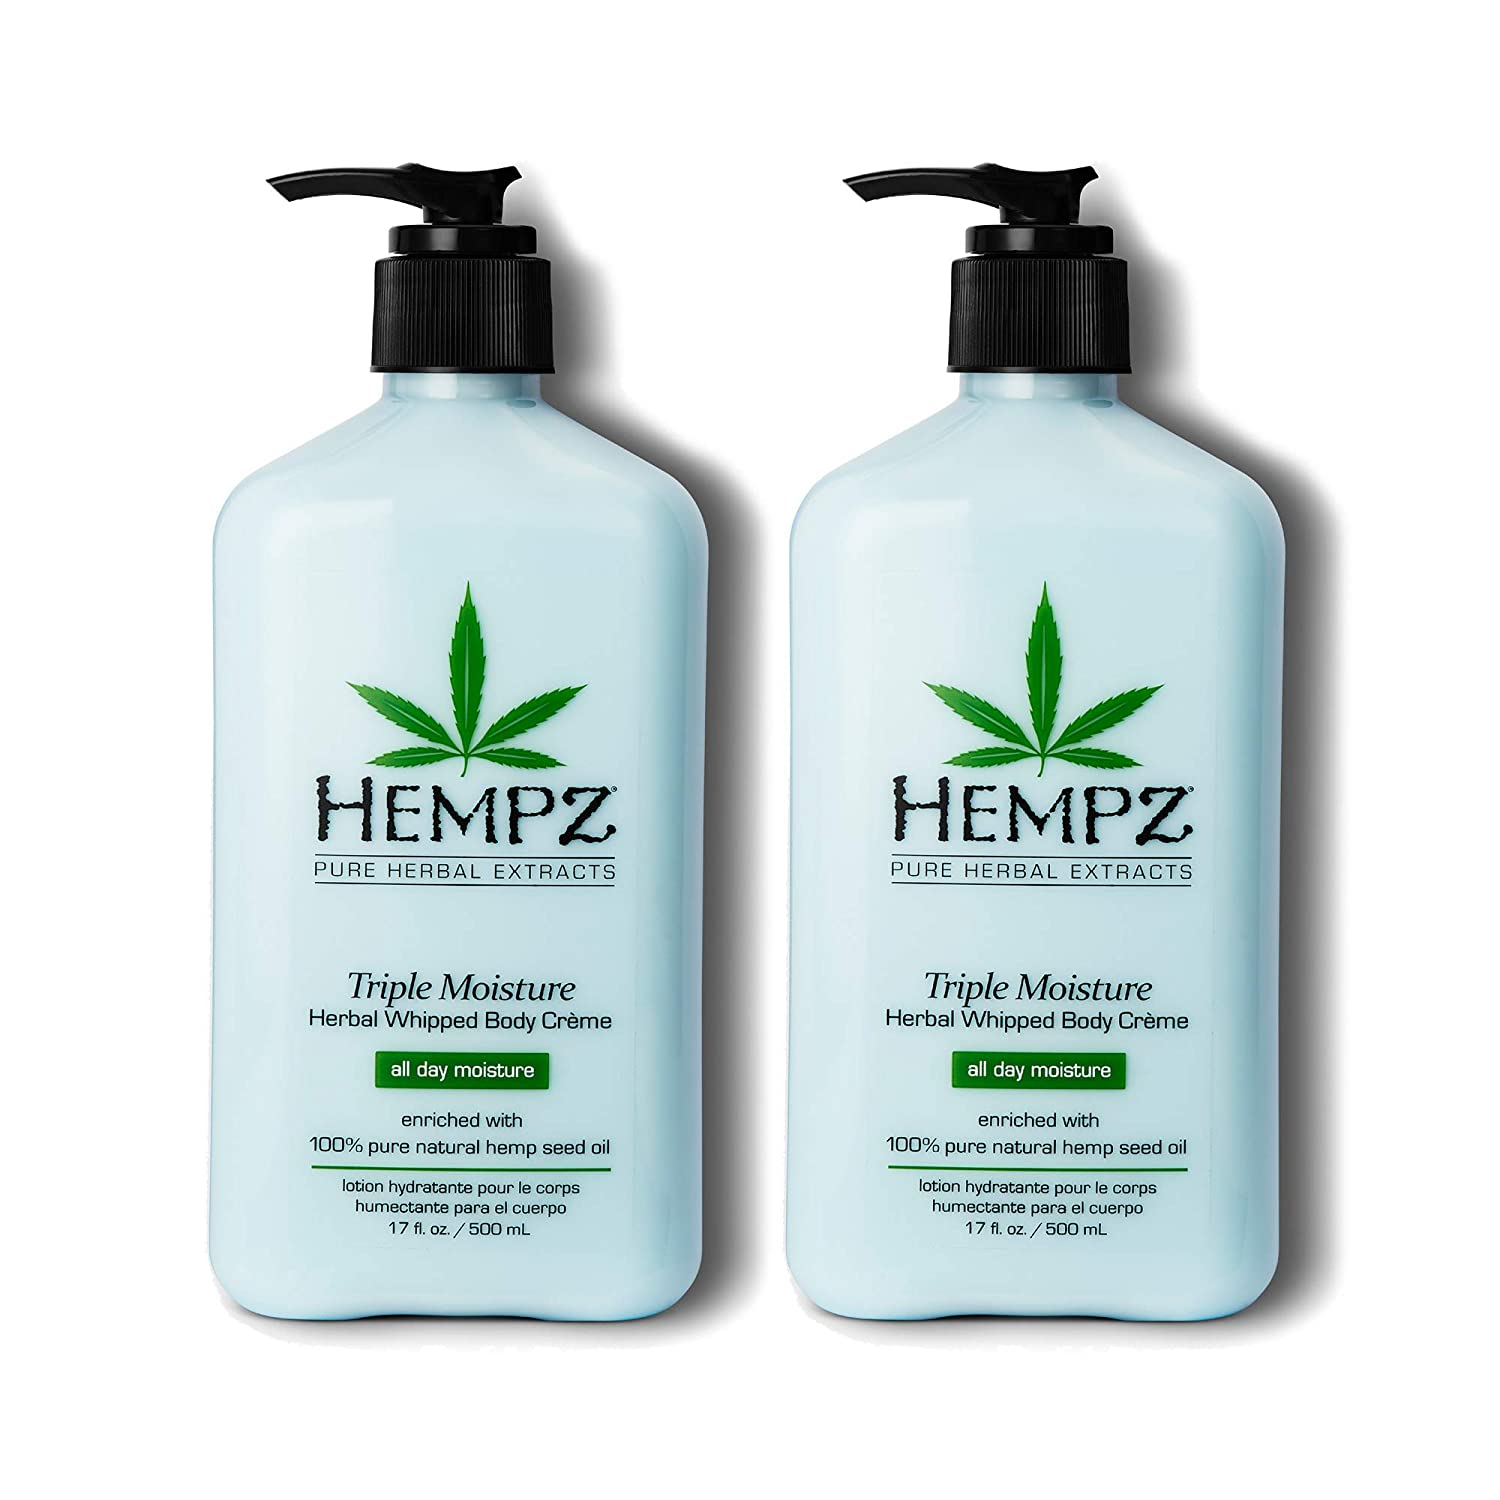 Hempz Natural Triple Moisture Herbal Whipped Body Cream with 100% Pure Hemp Seed Oil for 24-Hour Hydration - Moisturizing Vegan Skin Lotion with Yangu Oil, Peach and Grapefruit, 17oz, 2 Pack Bundle: Beauty